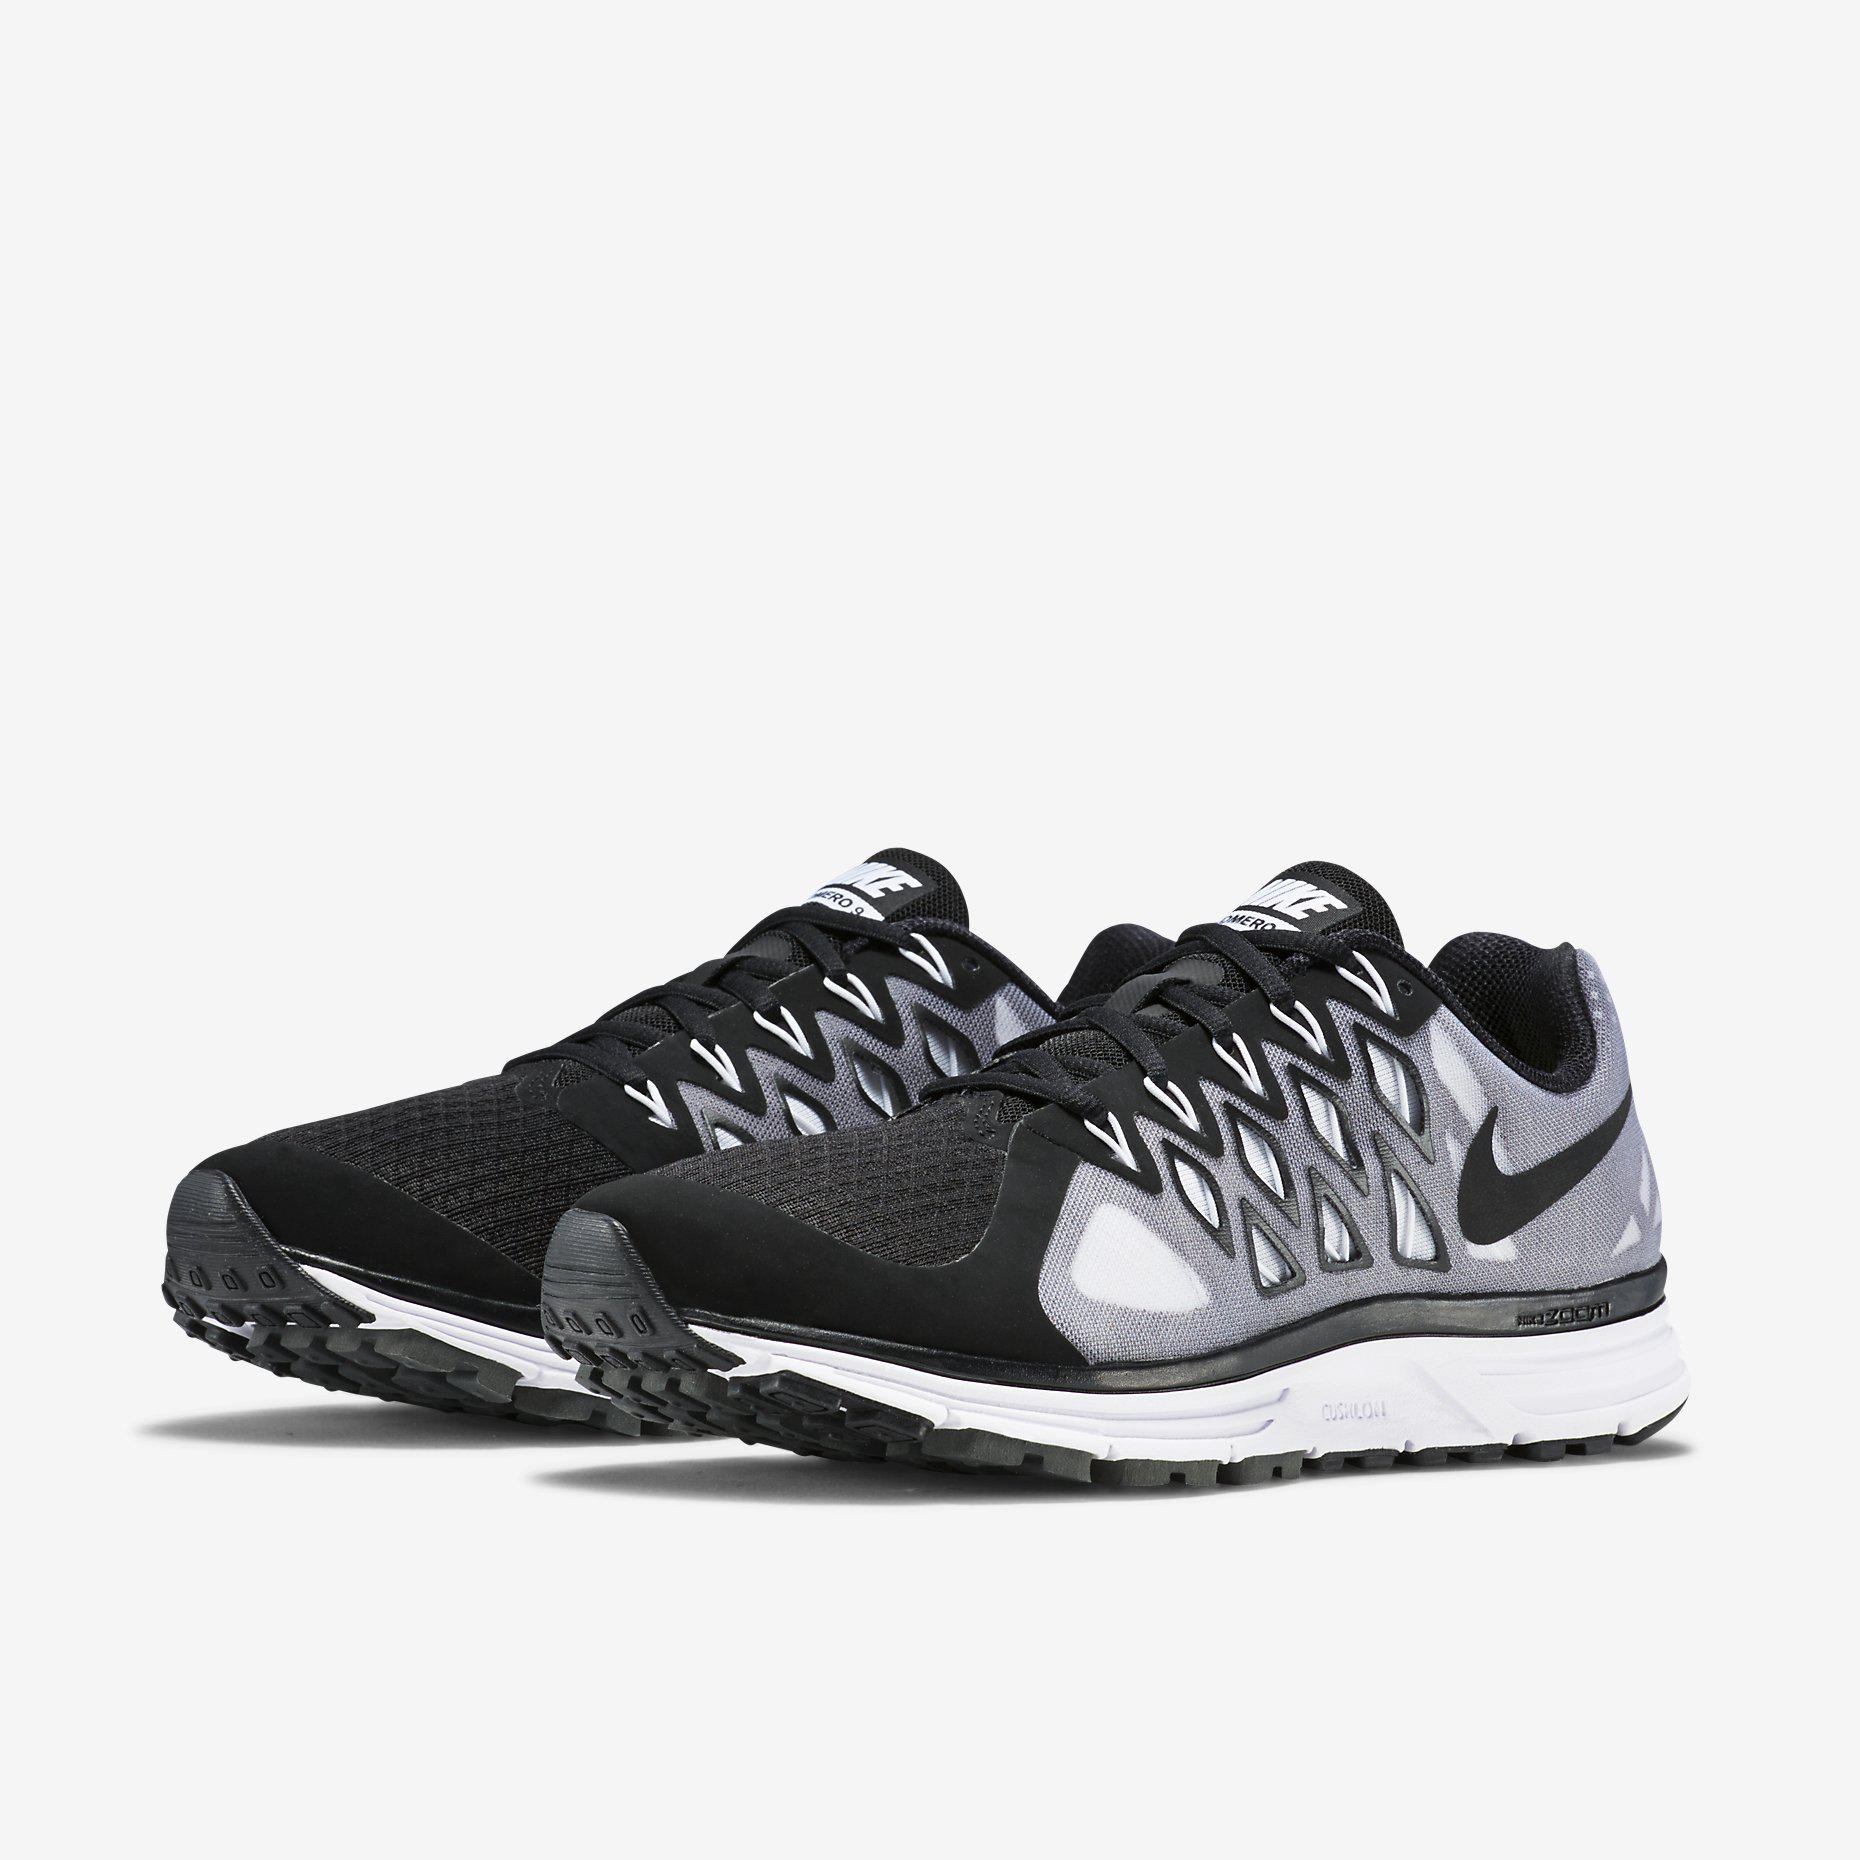 Nike Vomero Shoes Price In India